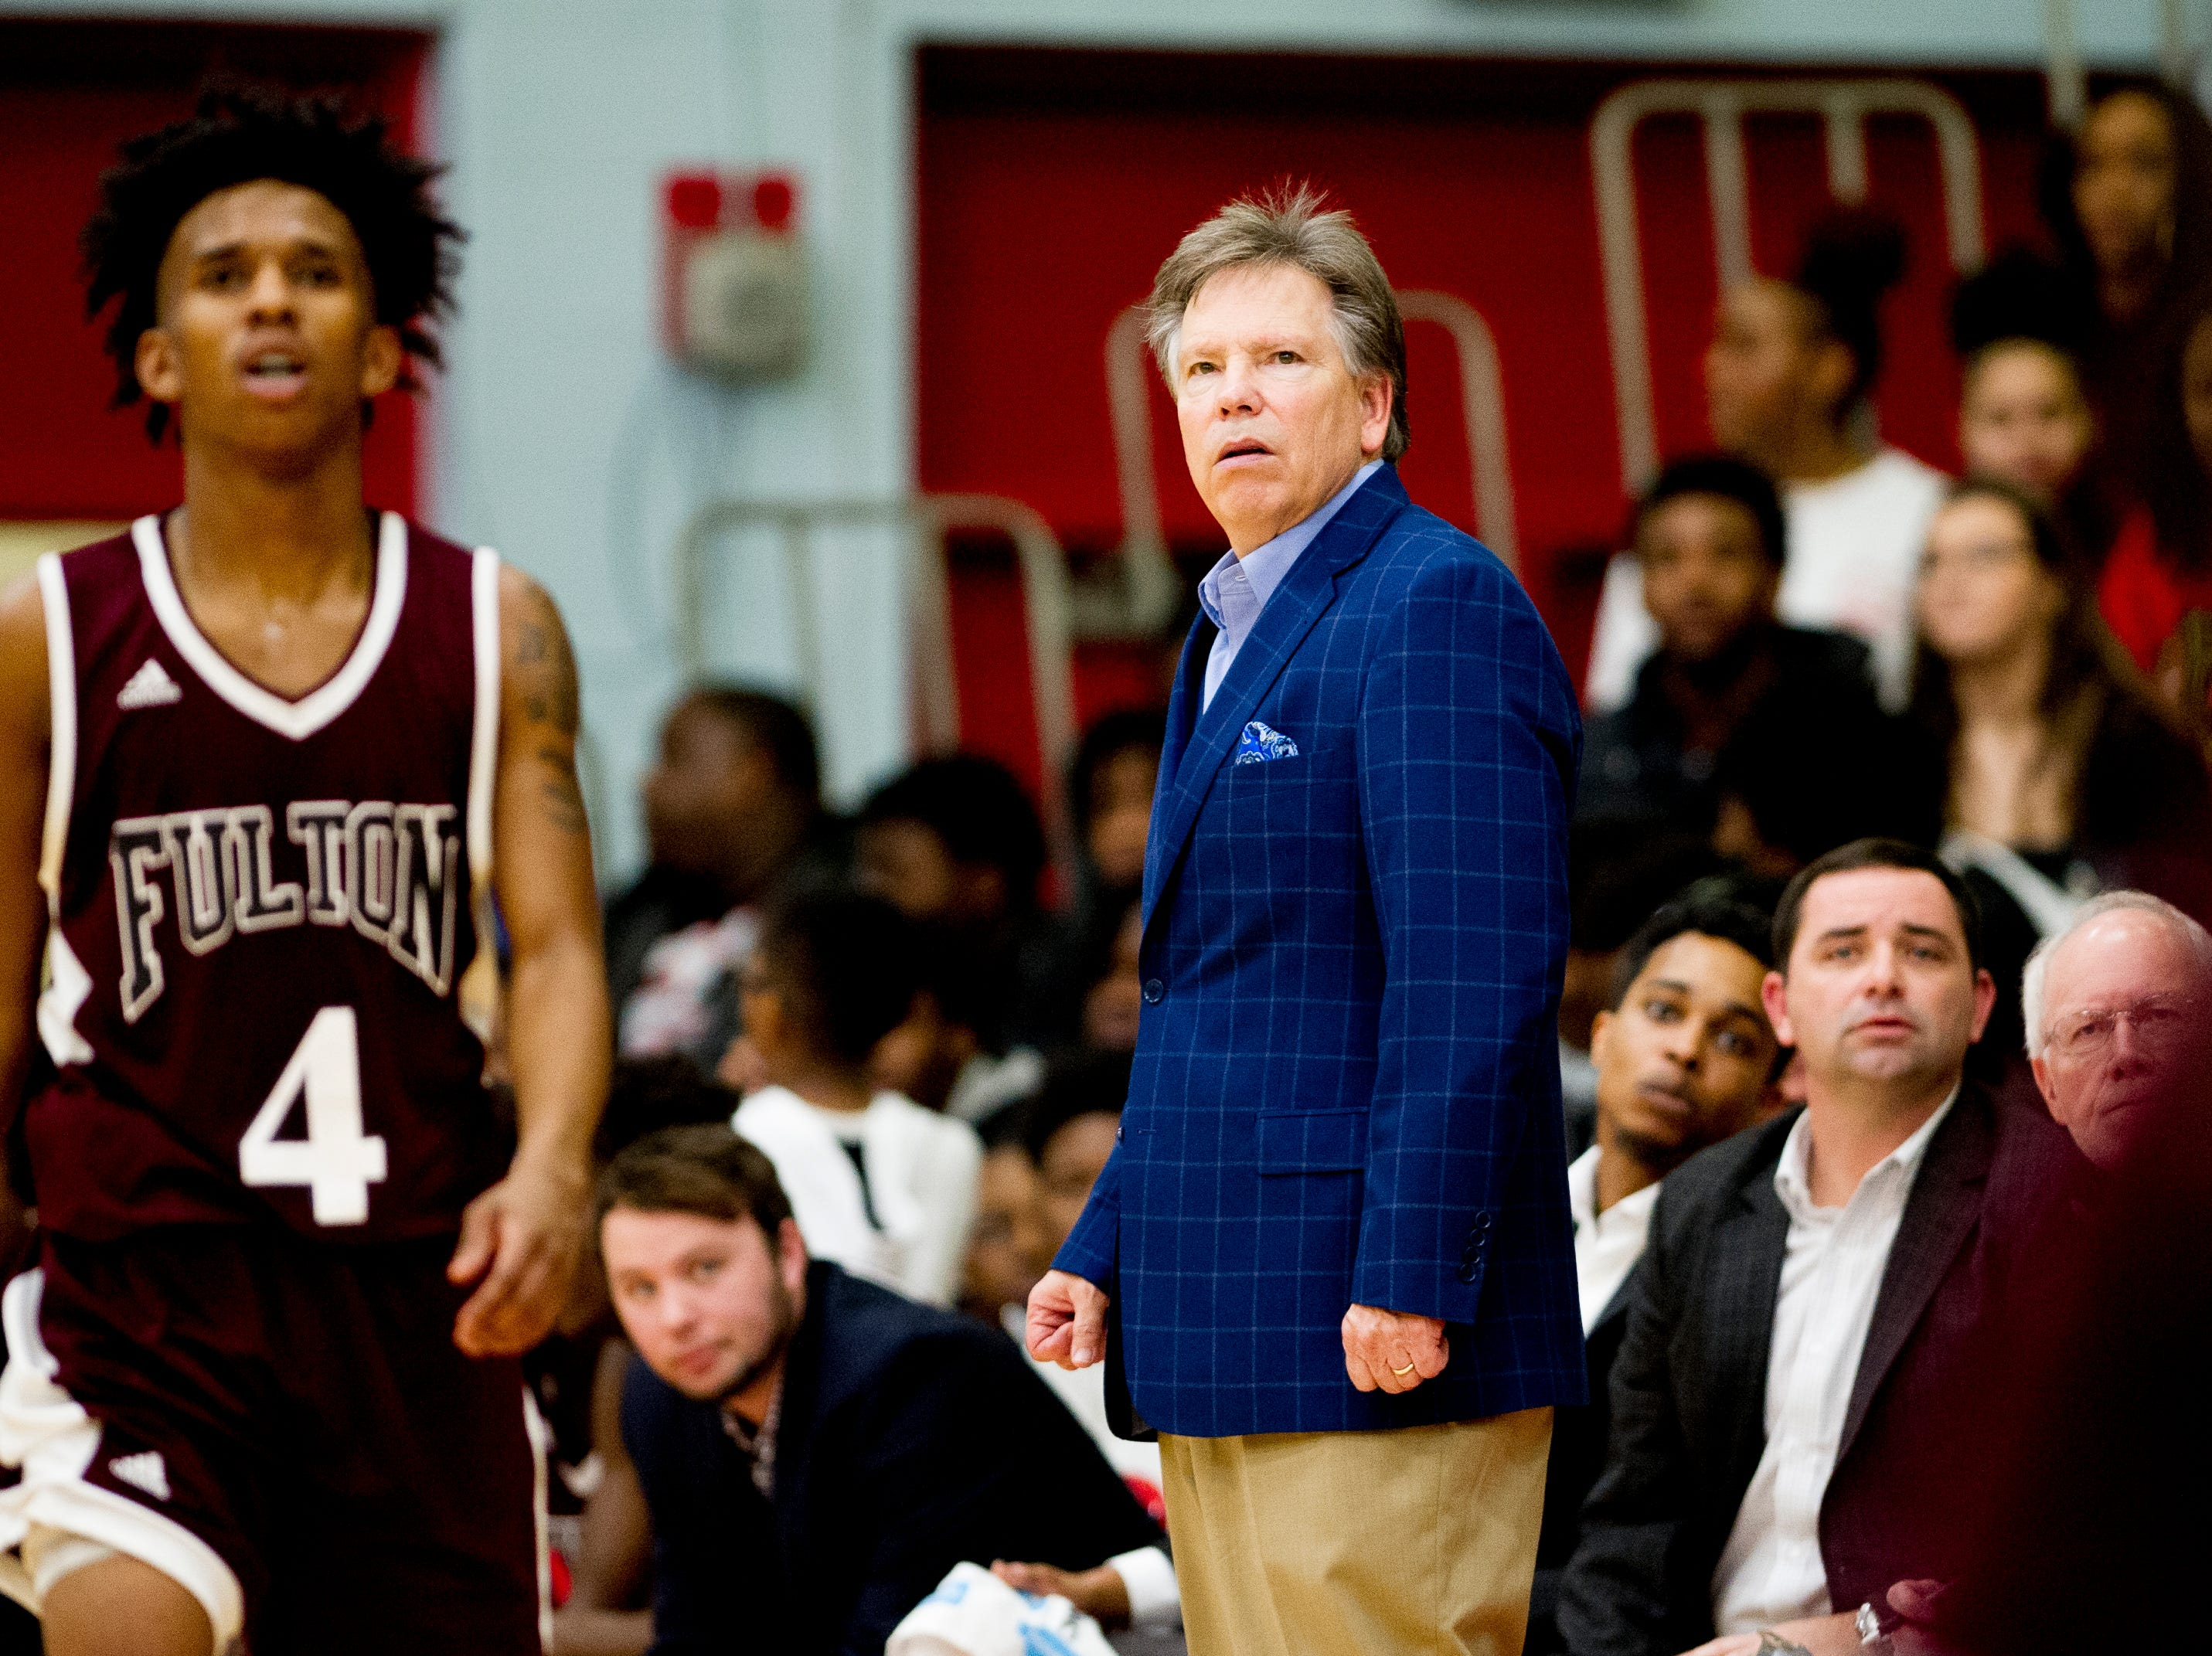 Fulton Boys Head Coach Jody Wright watches the game during a game between Austin-East and Fulton at Austin-East High School in Knoxville, Tennessee on Saturday, January 5, 2019.